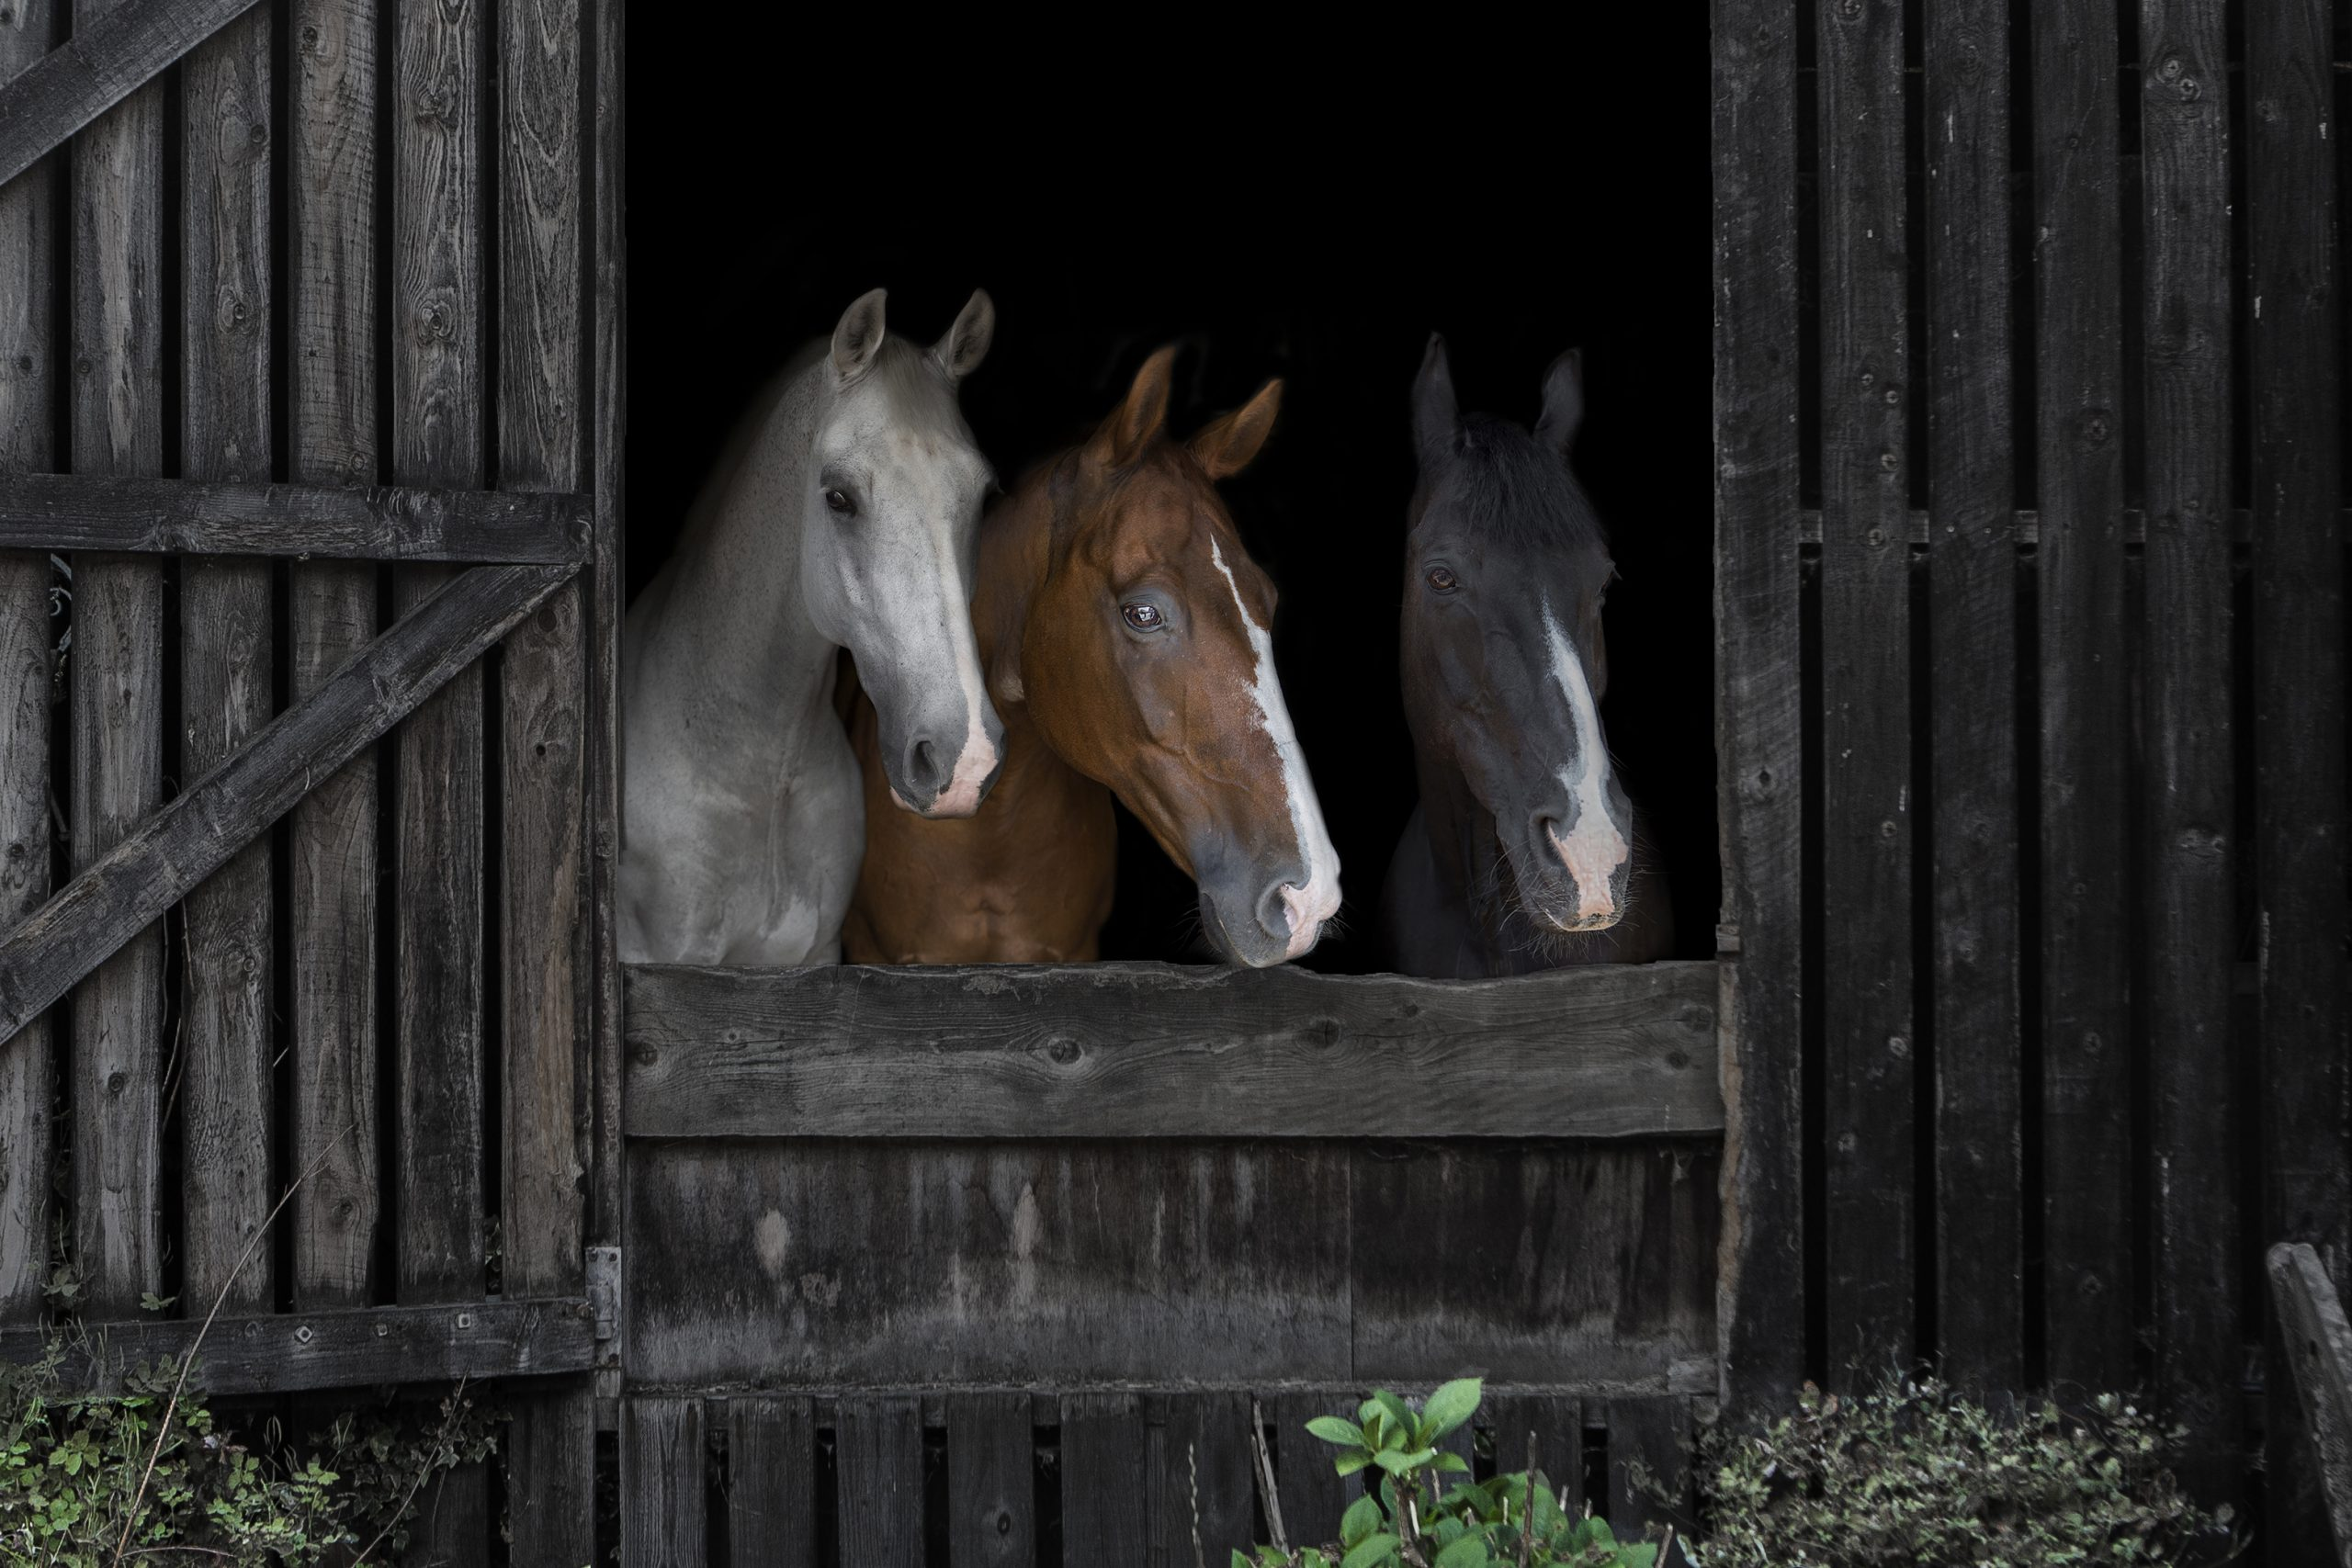 Emma Lowe Horse Photography – Nemo, Uno & Reble